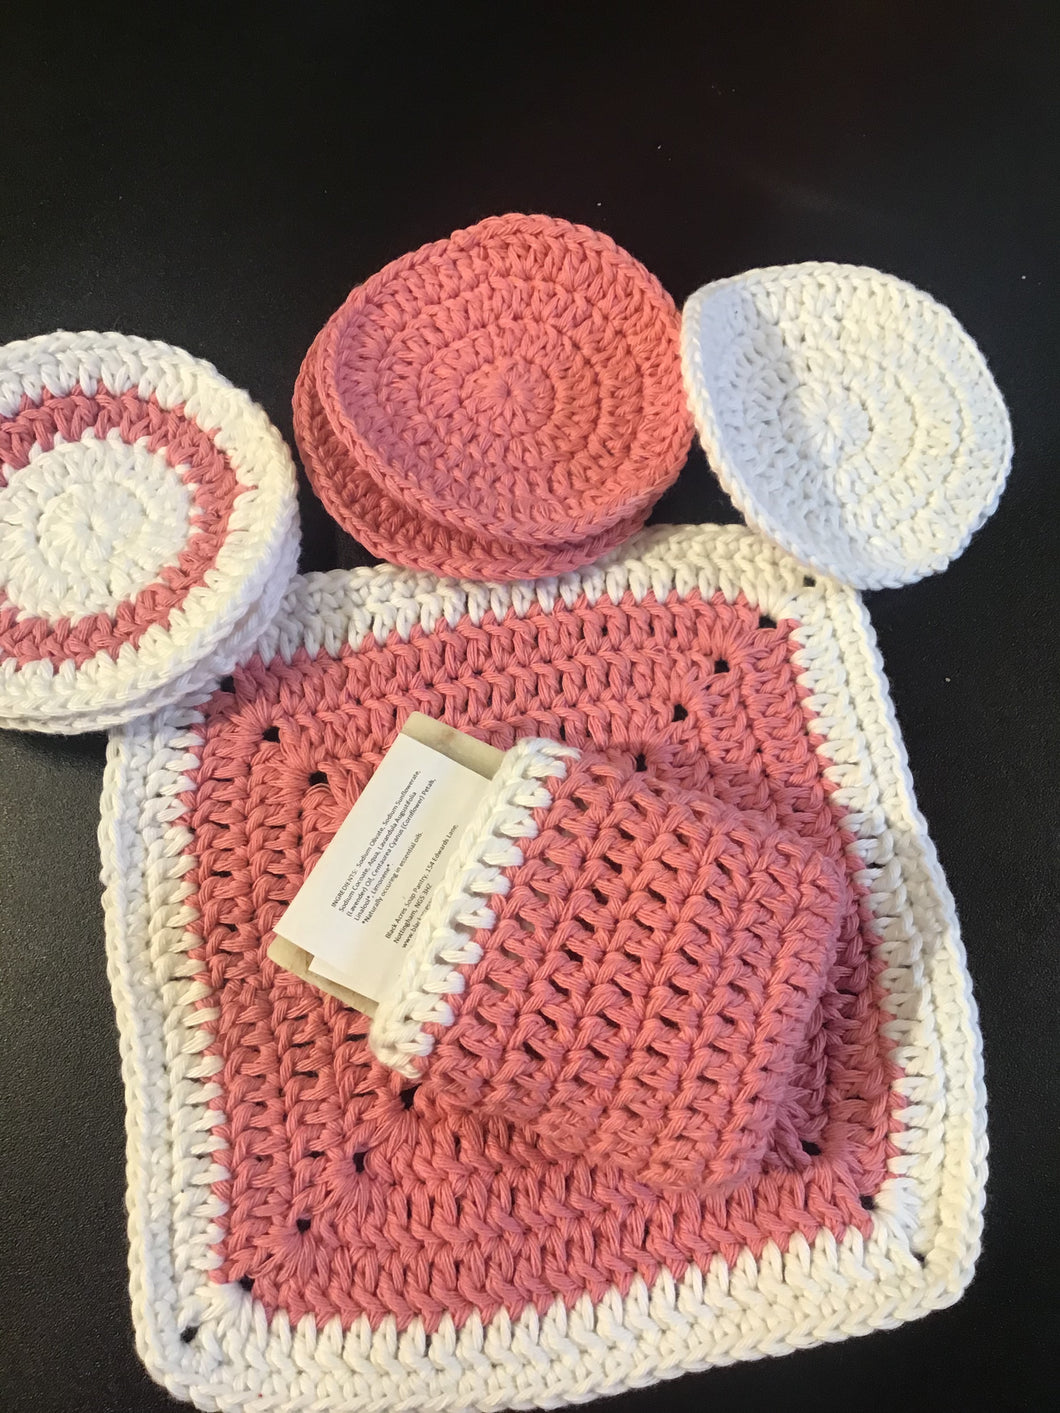 Pamper set: 100% crocheted cotton, flannel, wipes, soap bag